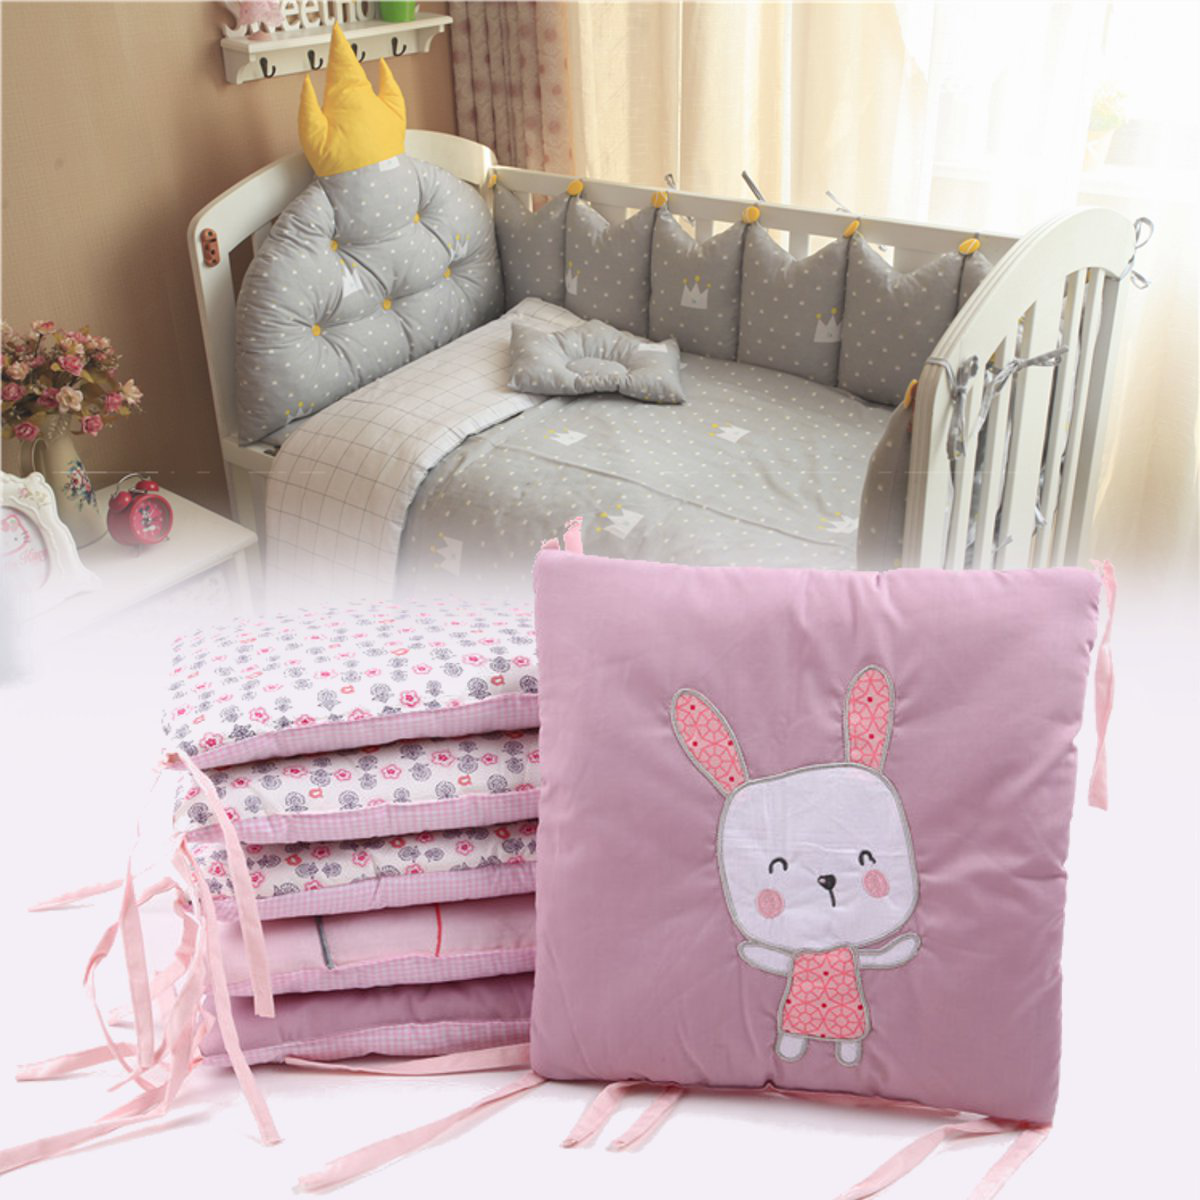 6Pcs Set Cotton Cot Bumper Baby Crib Infant Toddler Nursery Bed Protector Pillow